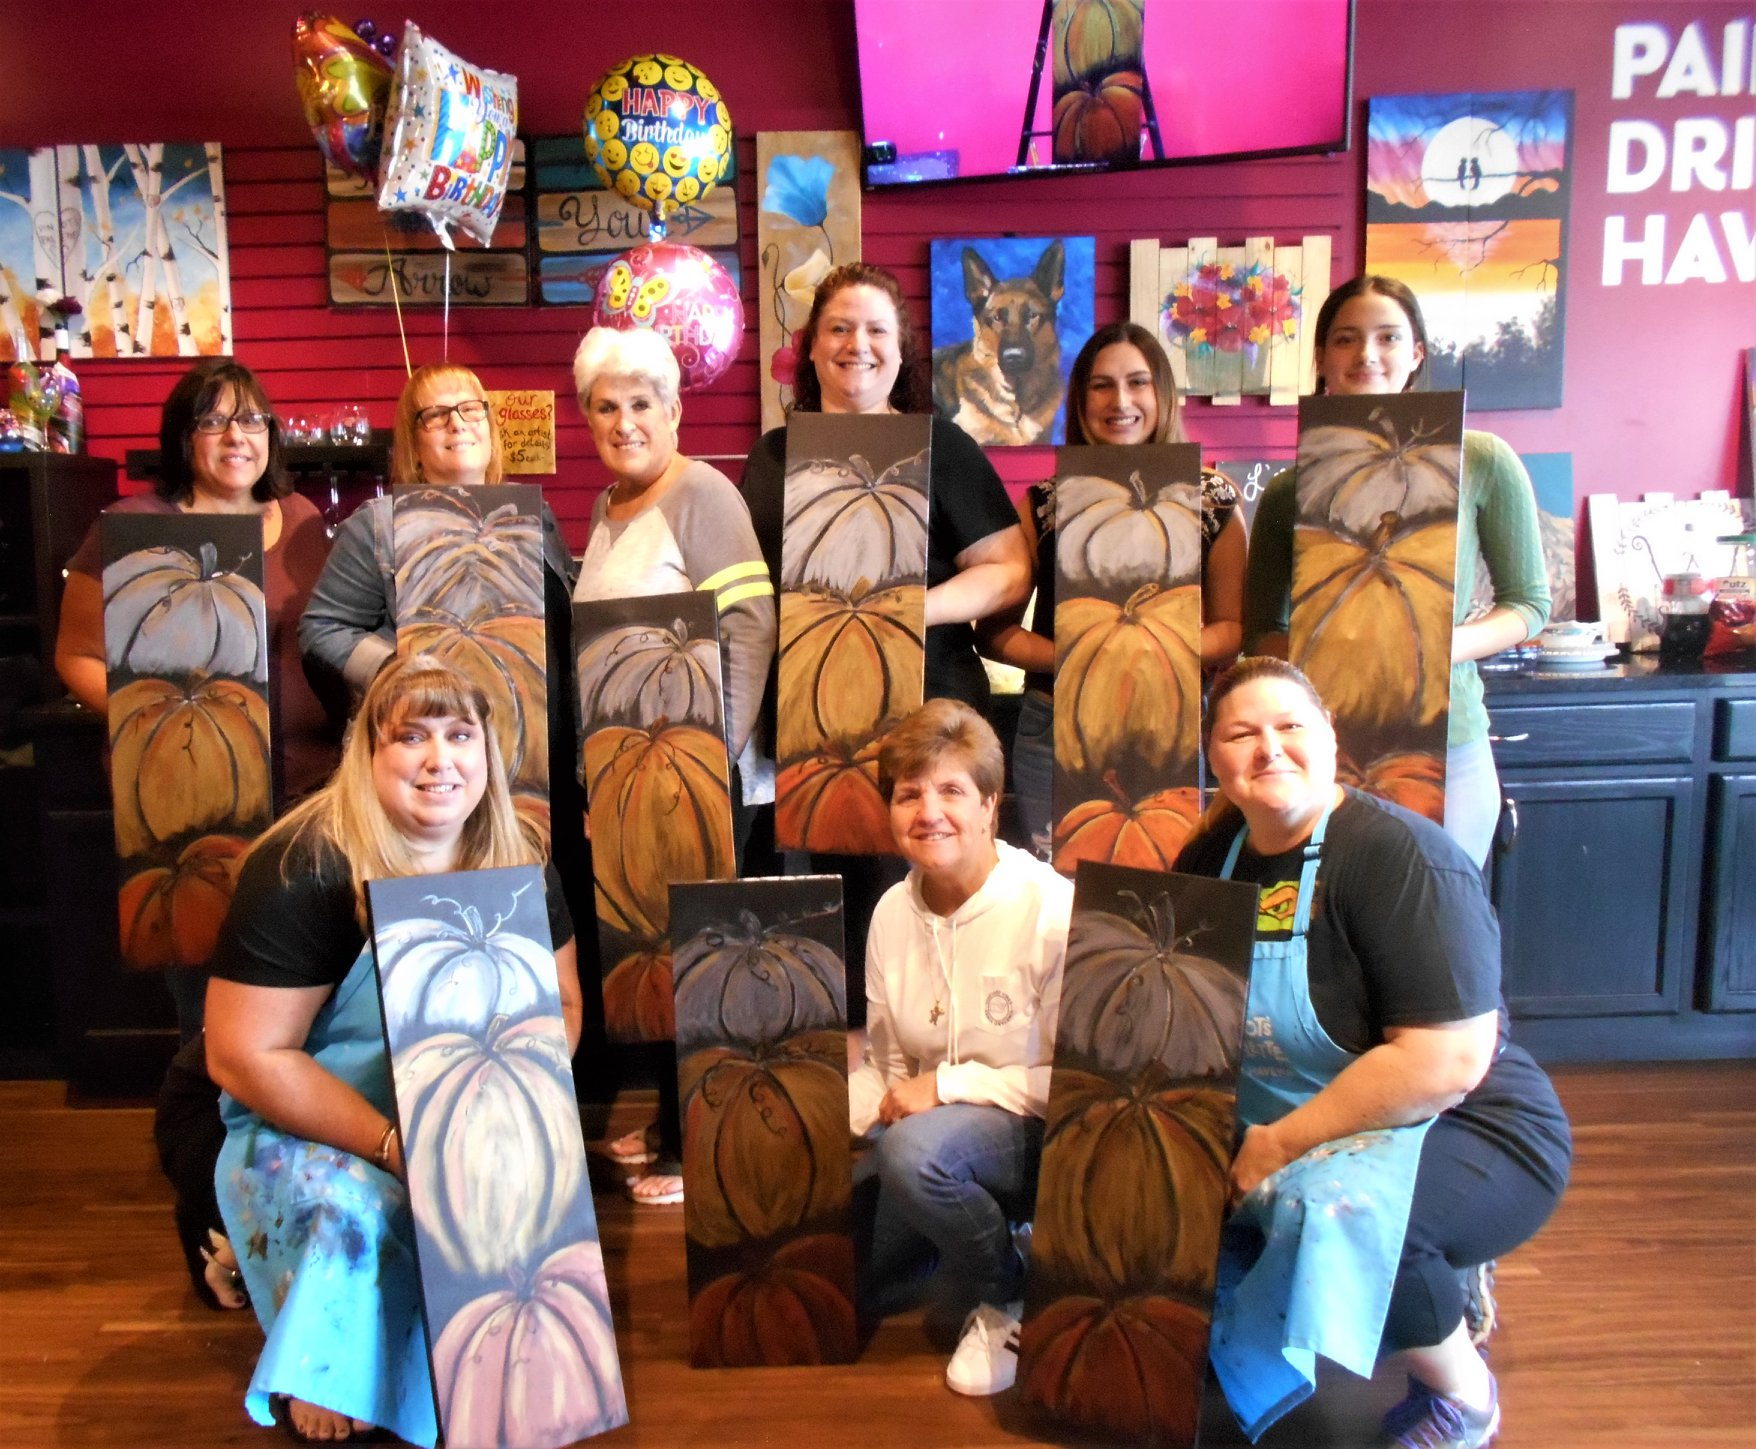 things to do in West Milford NJ for creative inspiration